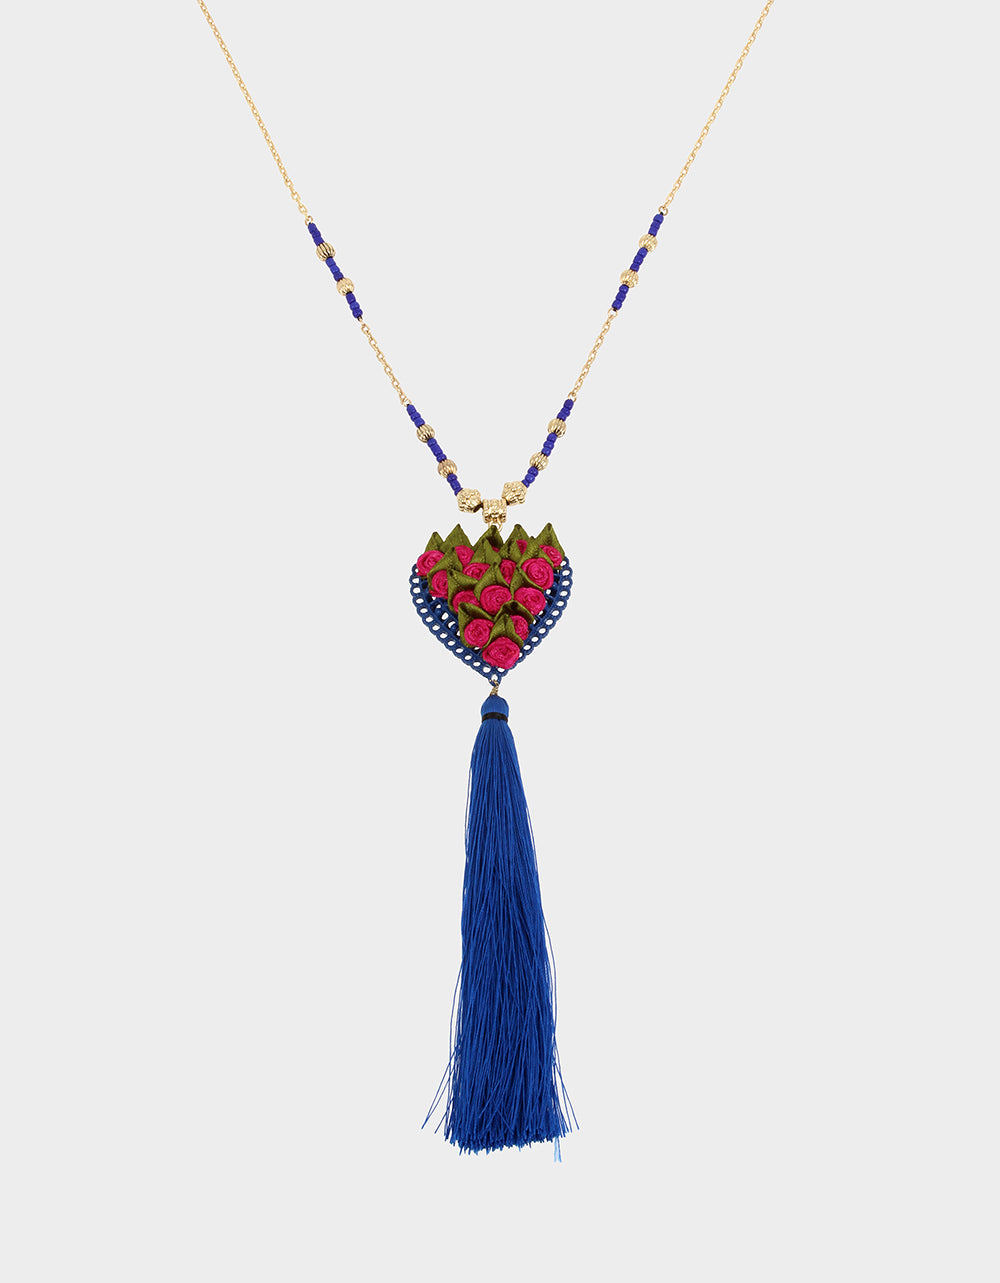 BETSEYVILLA HEART TASSEL PENDANT BLUE - JEWELRY - Betsey Johnson